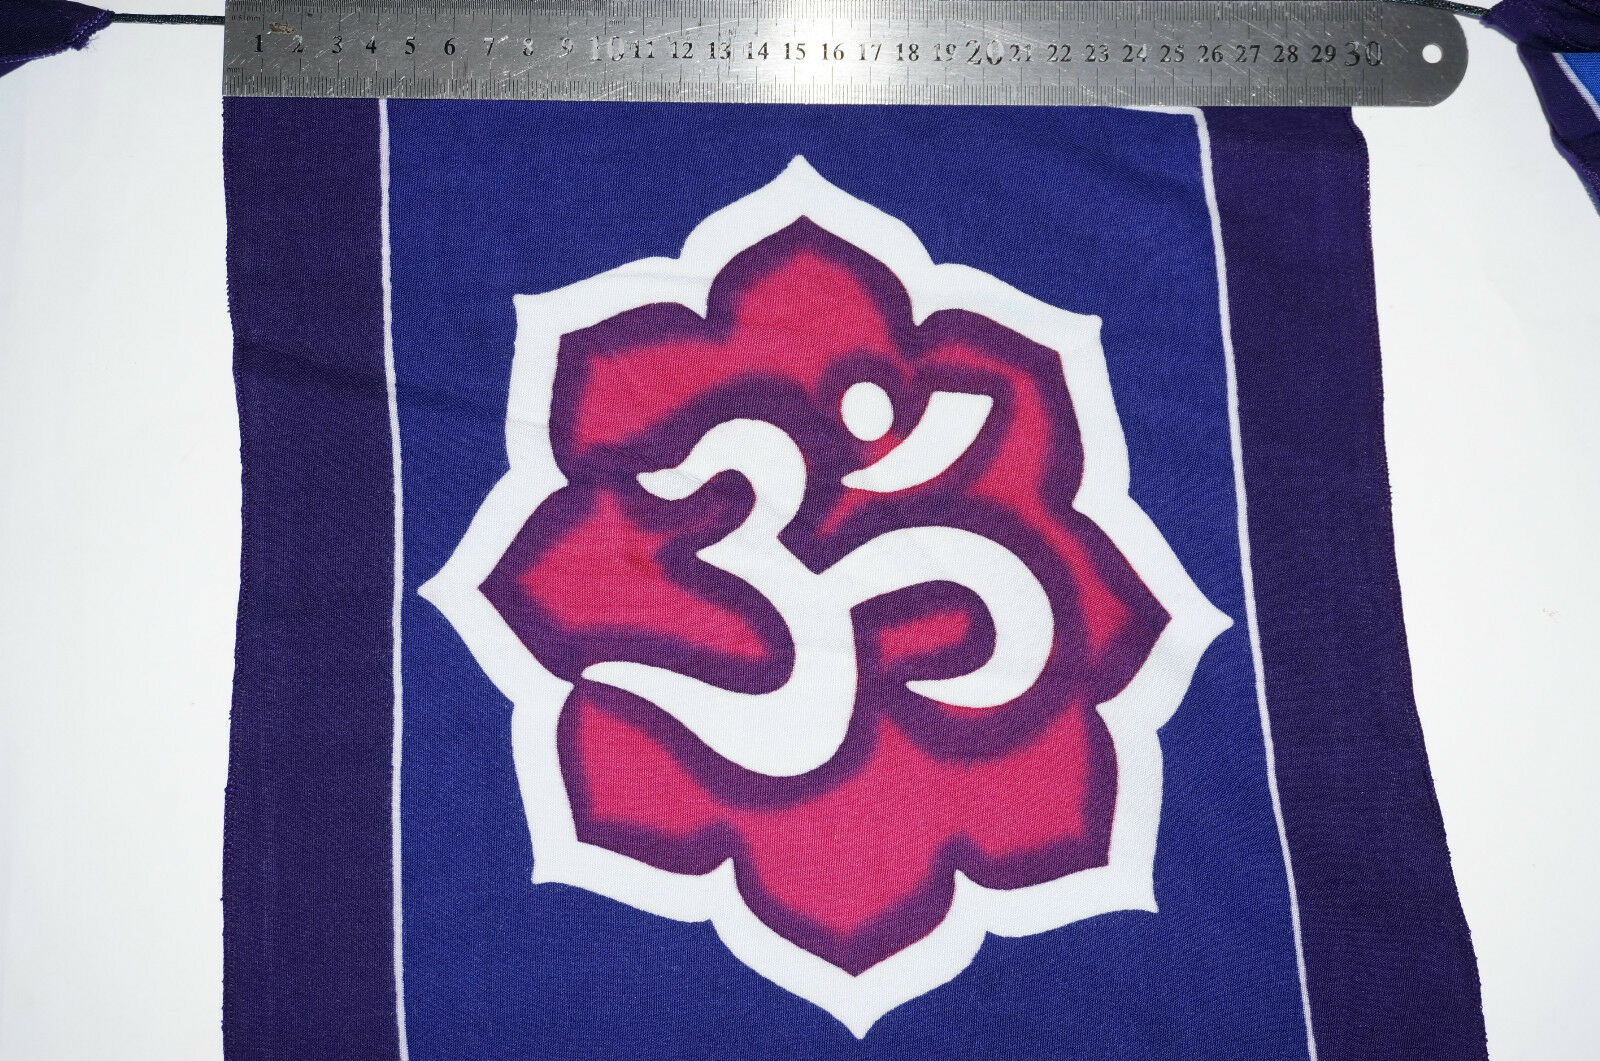 Yoga Prayer flag inspirational 7 Flags Nepal Peace huge 29cm x 34cm feng shui